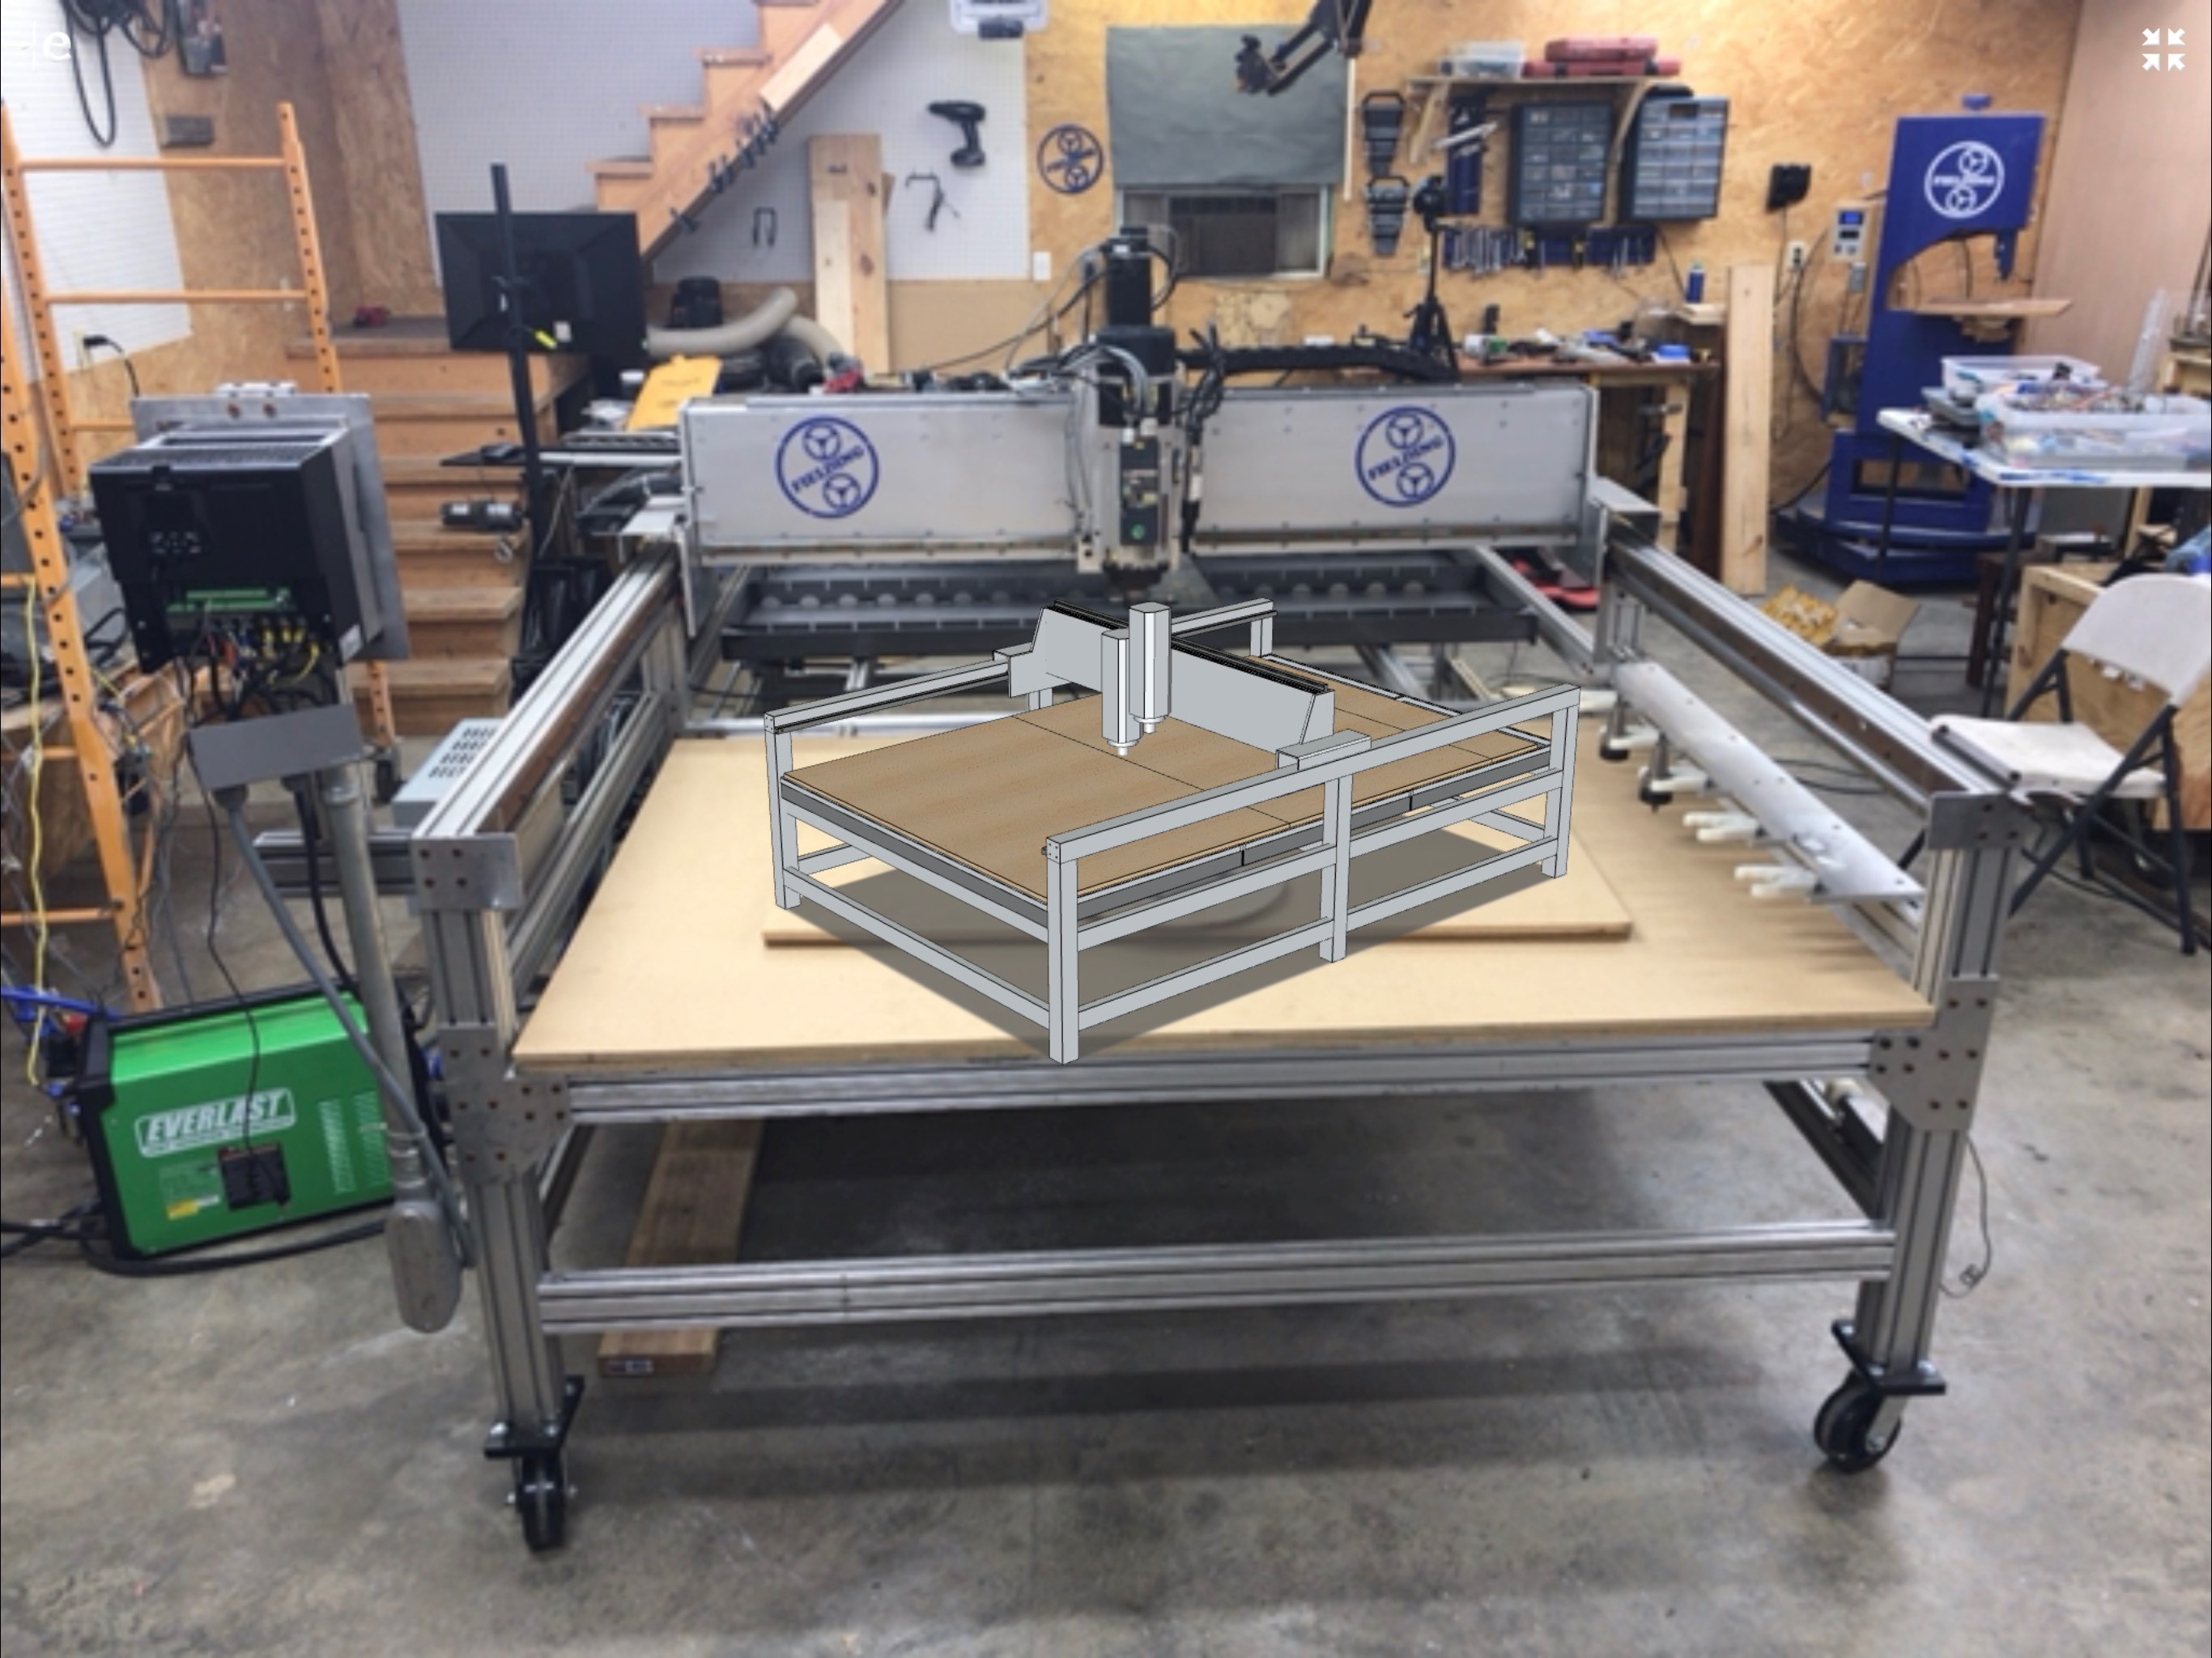 Building Your Own Personal Cnc Machine  A Three